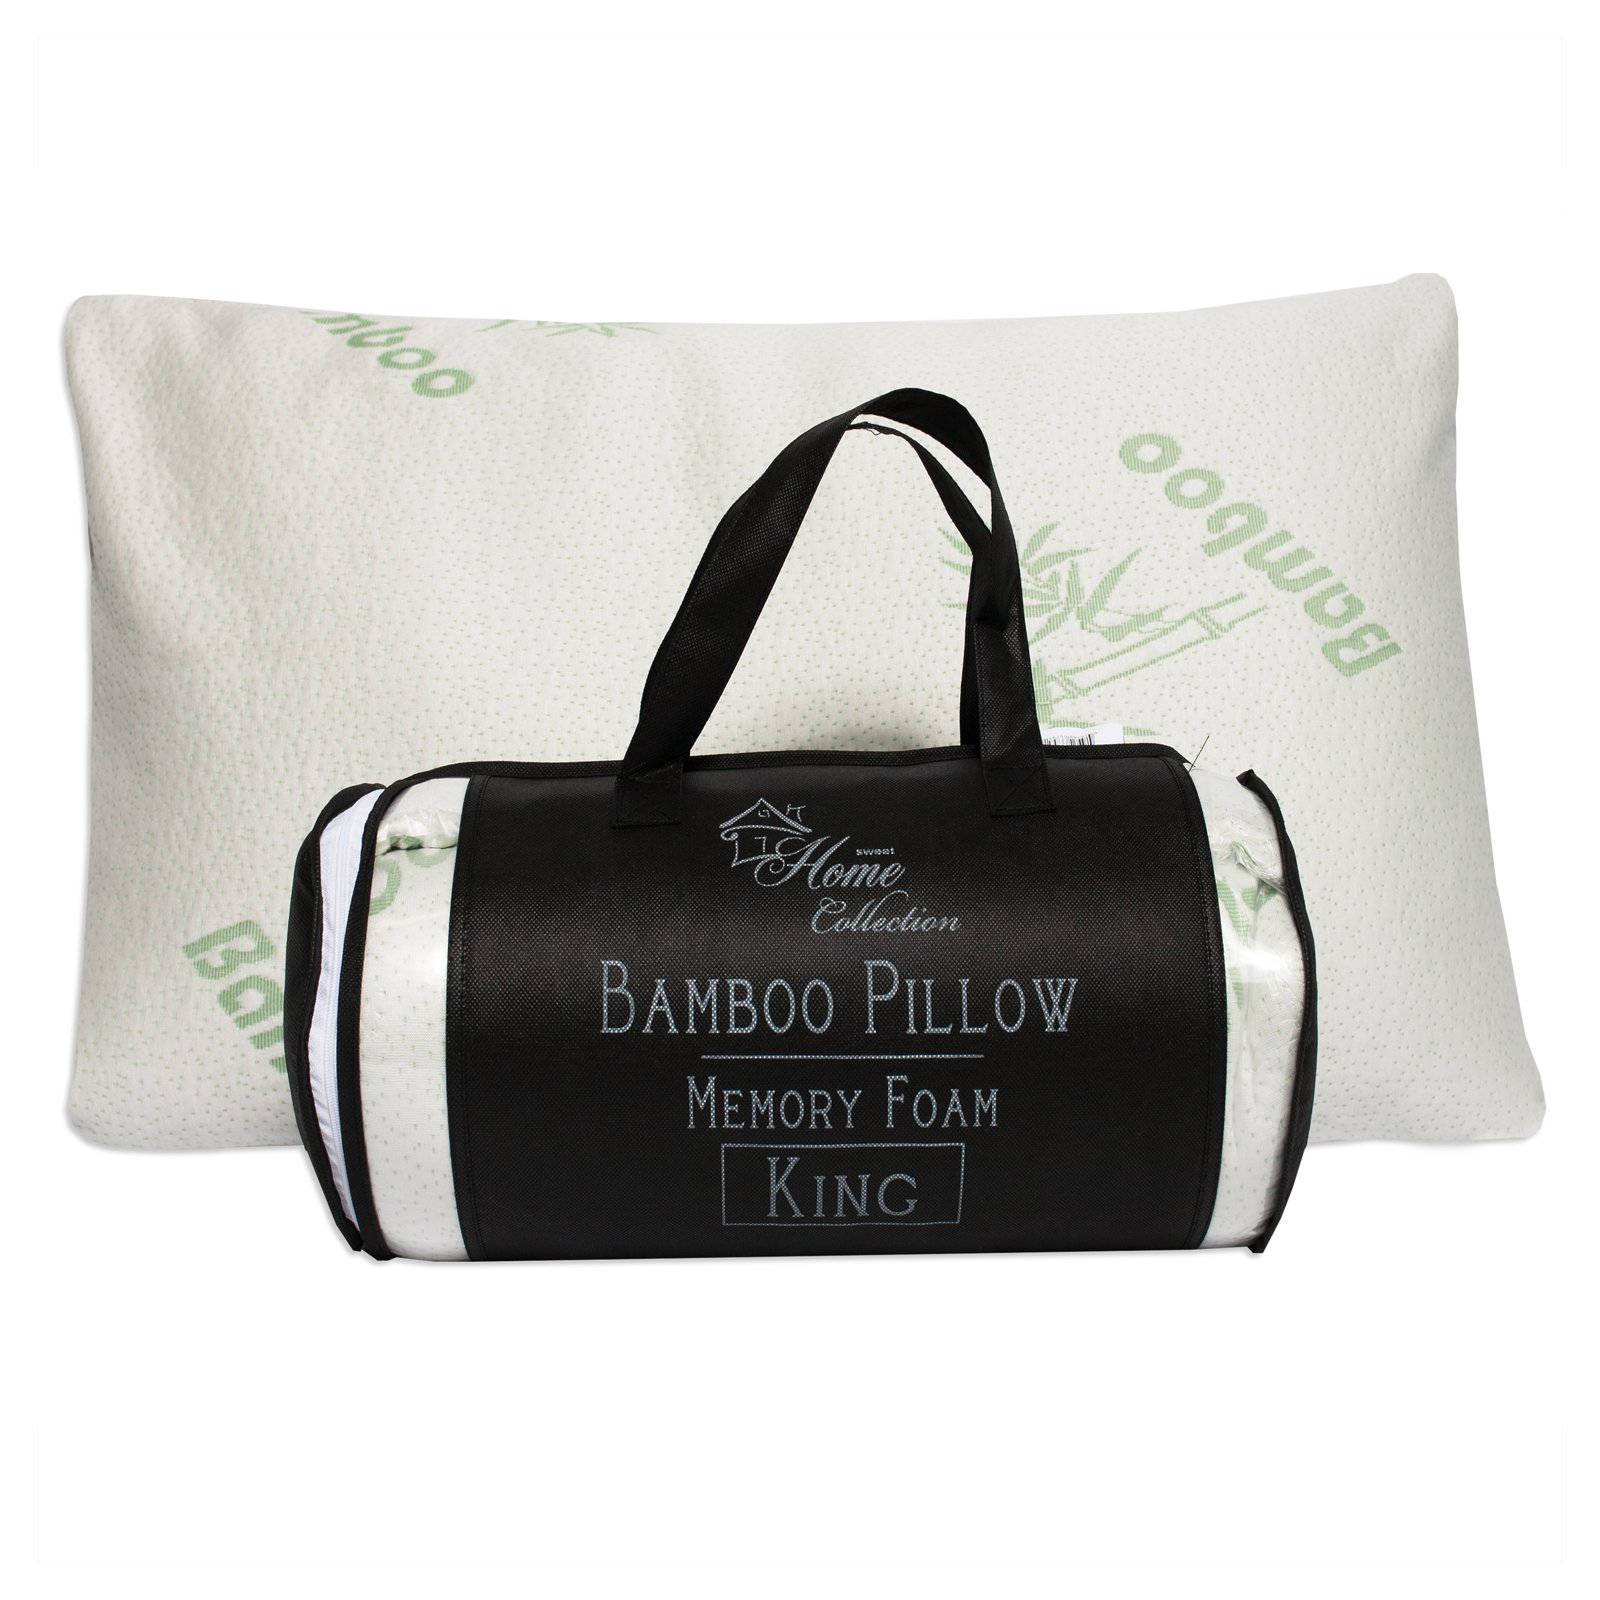 Hypoallergenic Bamboo Memory Foam Bed Pillow with Carry Bag by Sweet Home Collection